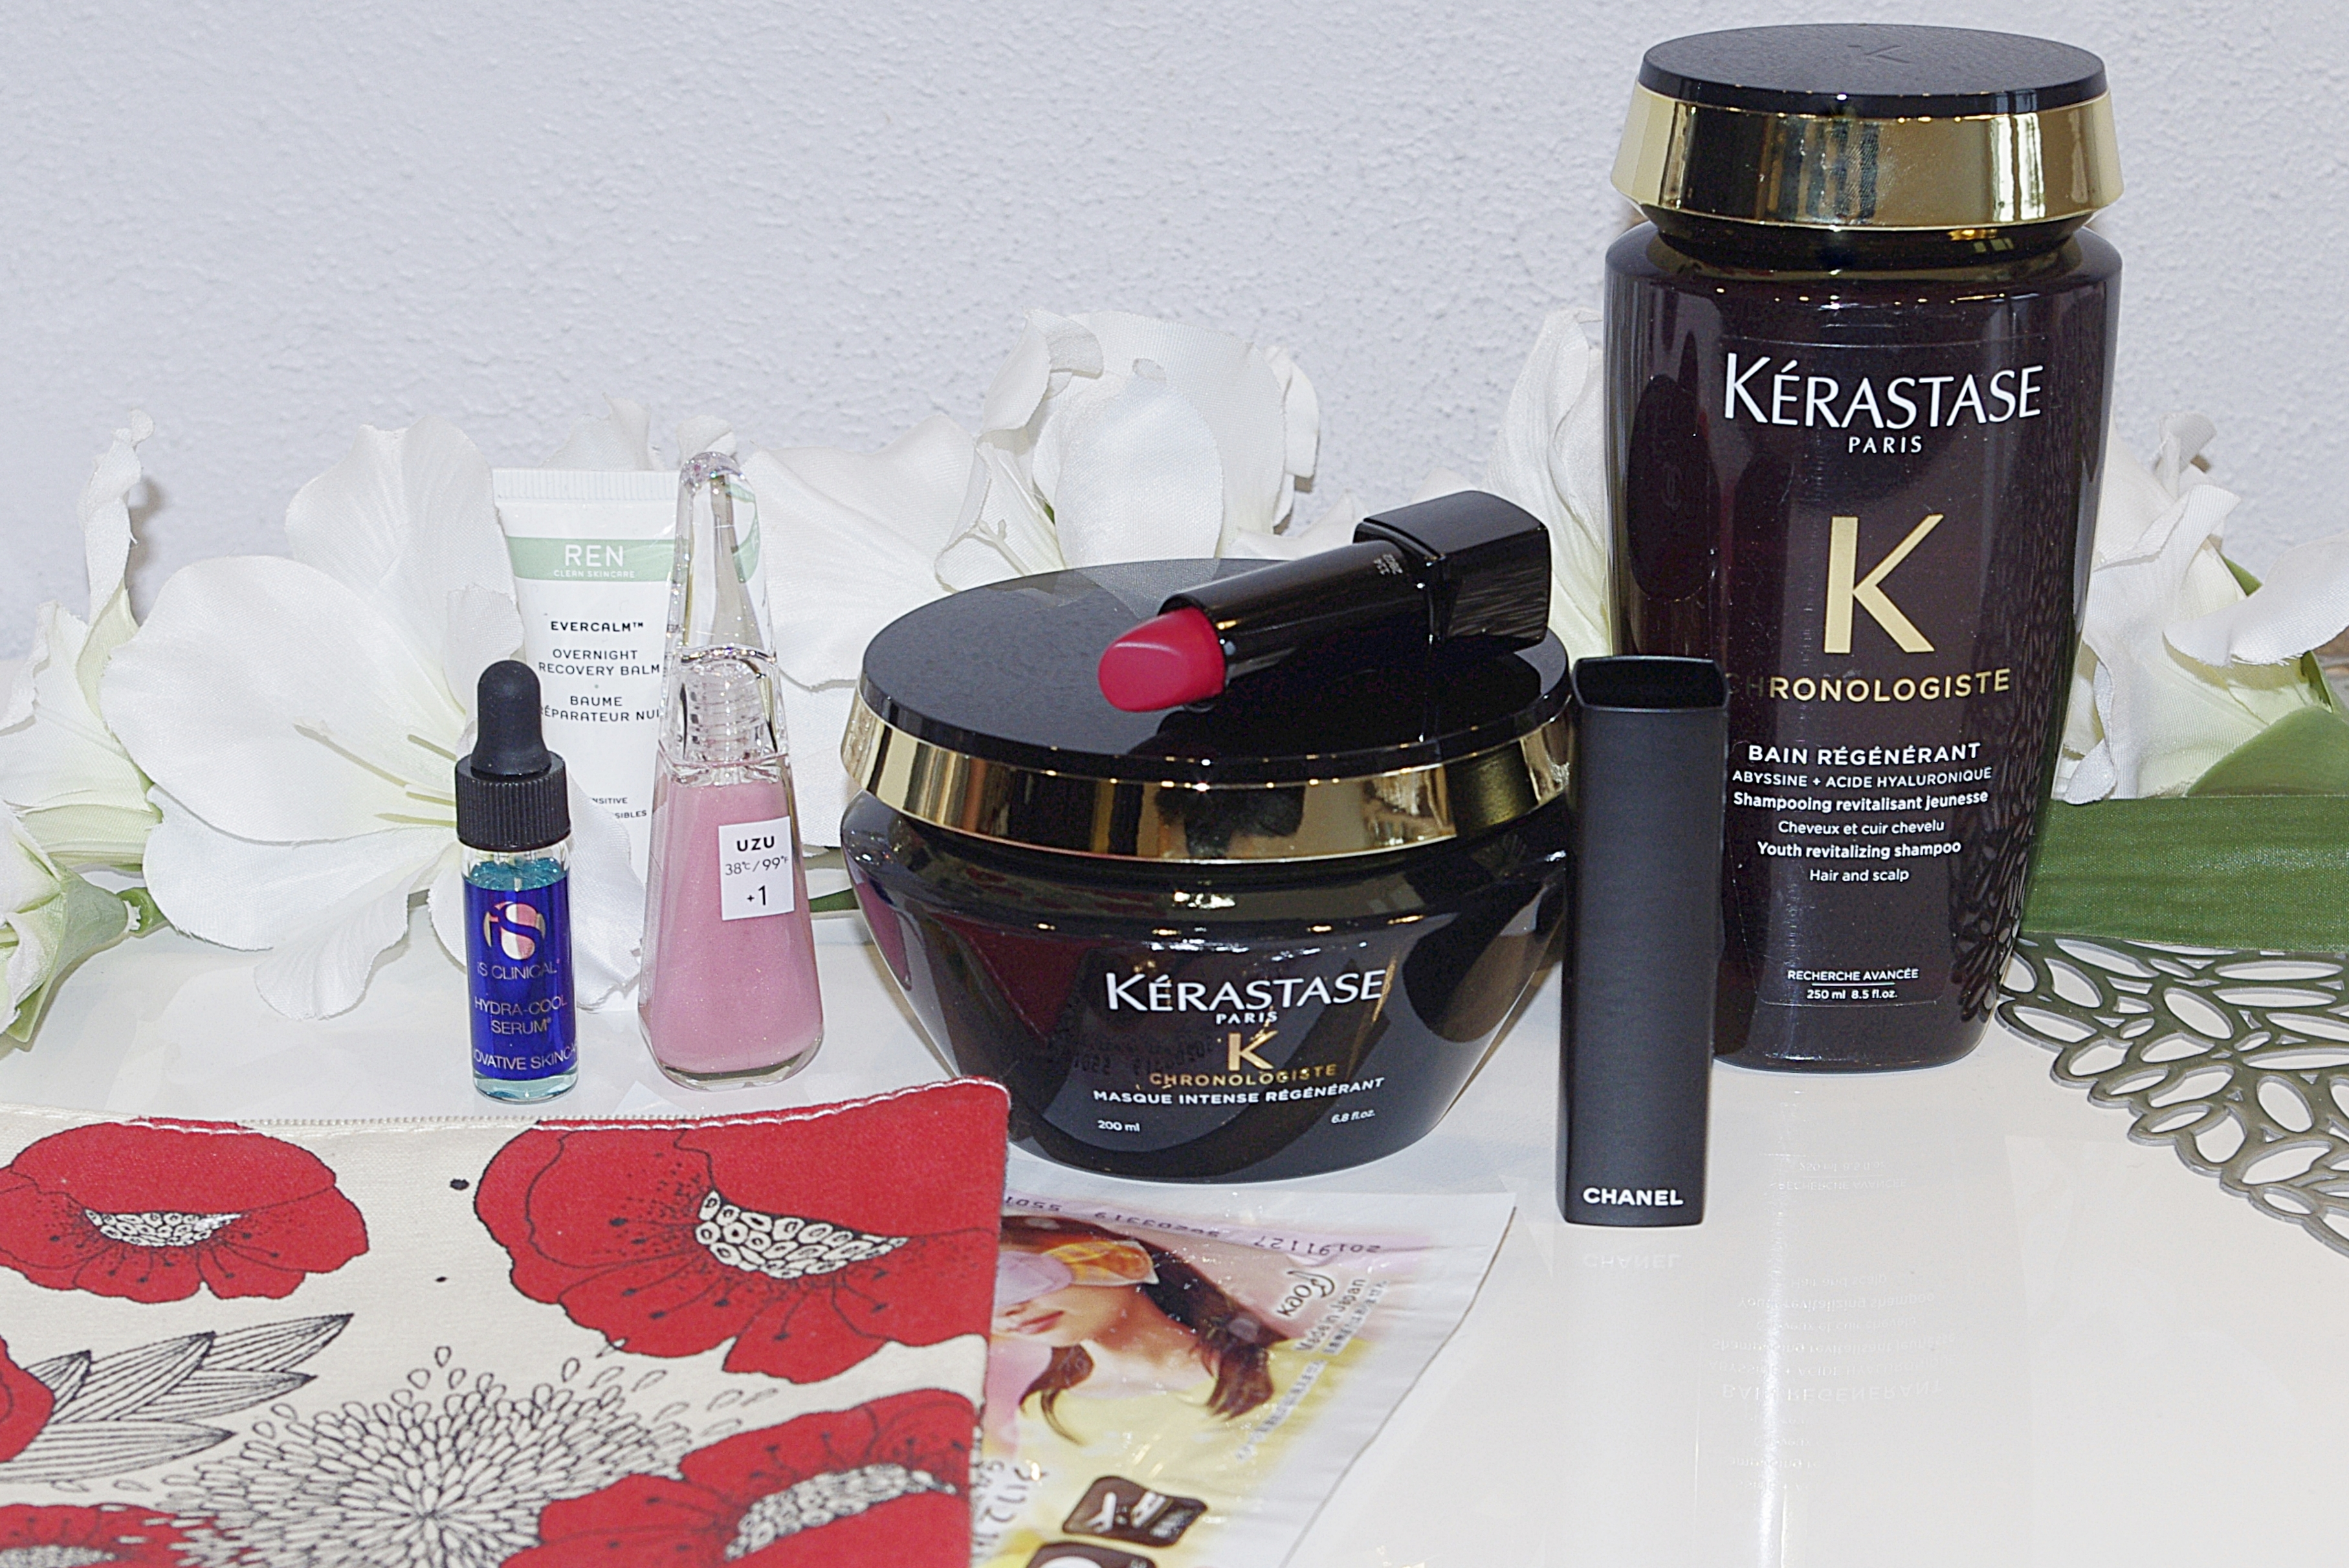 kerastase chronologiste is clinical uzu chanel